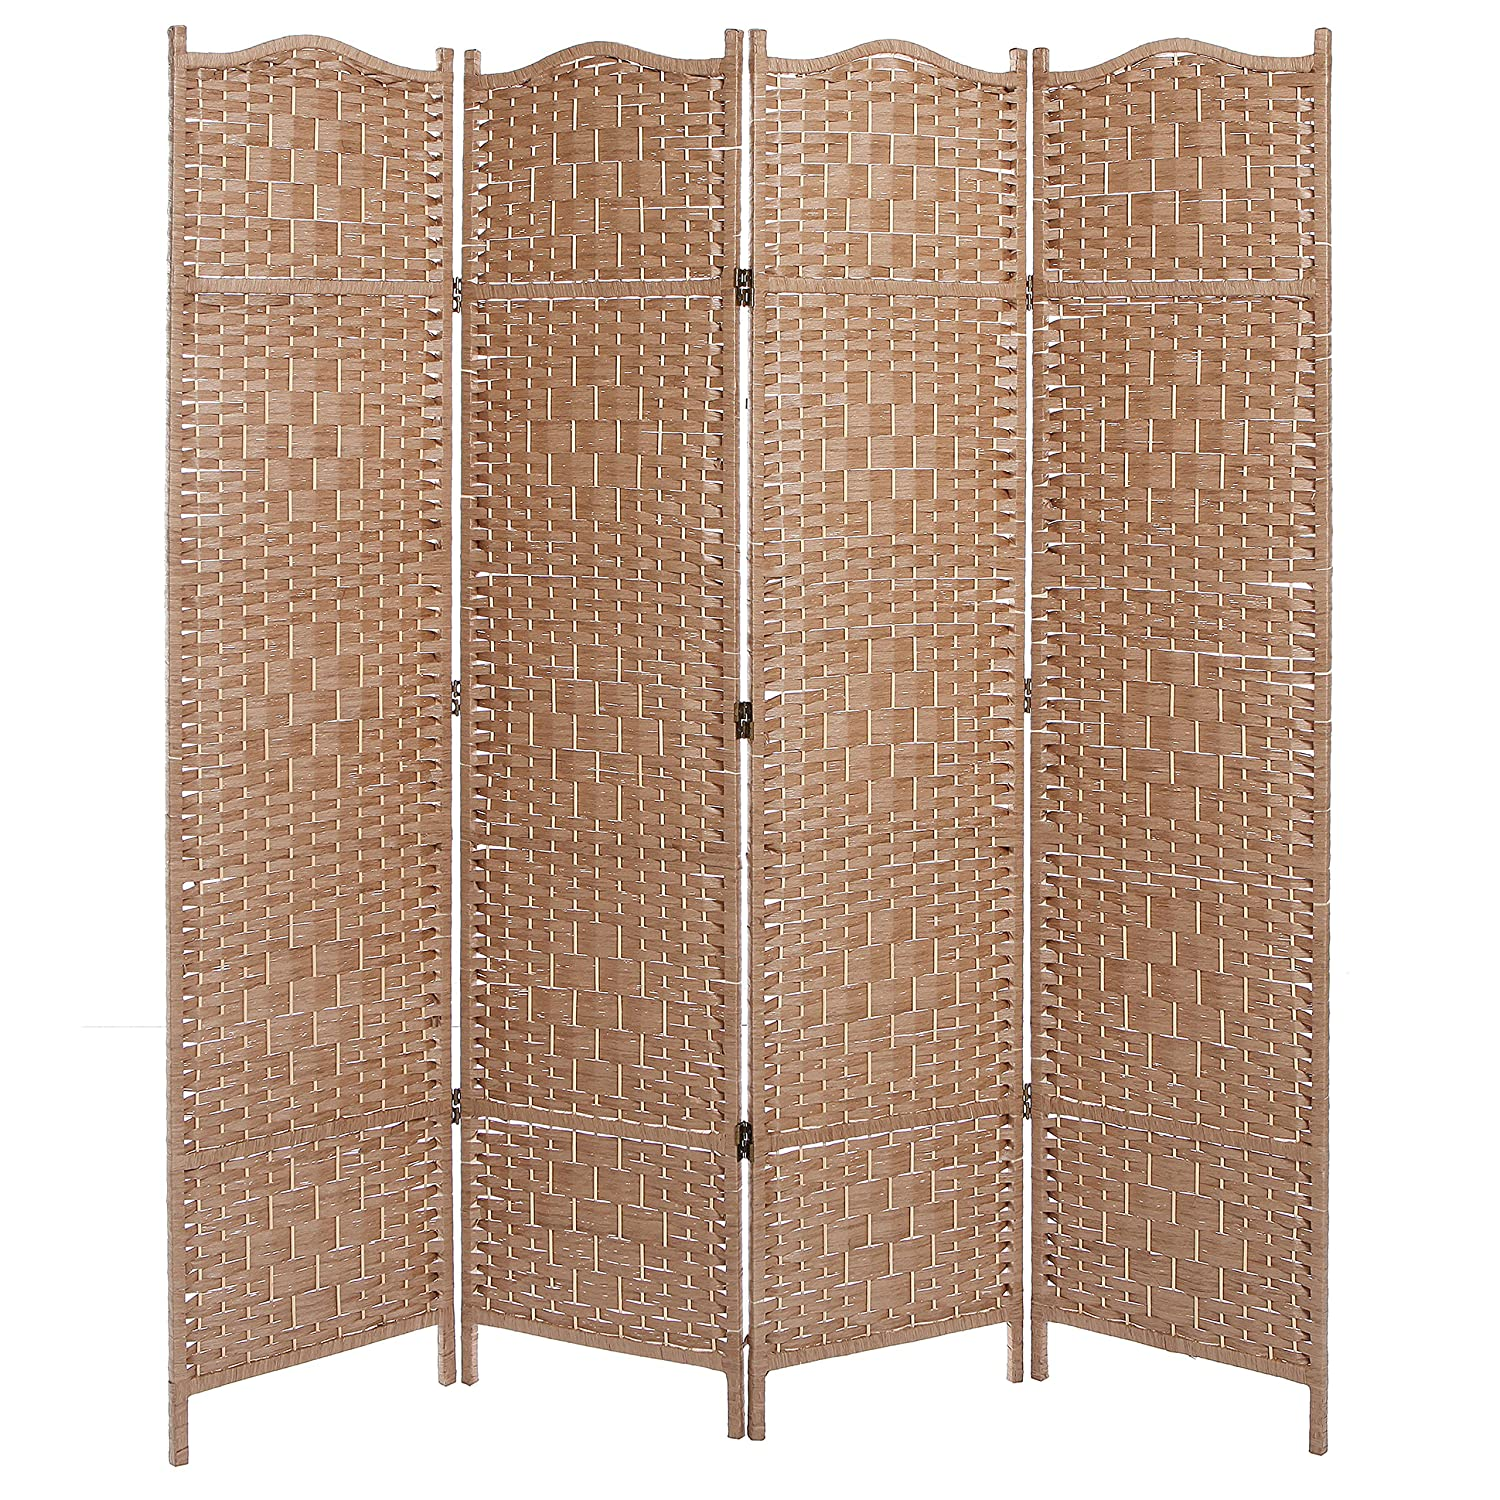 room dividers  amazoncom - freestanding beige wood woven textured  panel partition room dividerfolding privacy screen  mygift